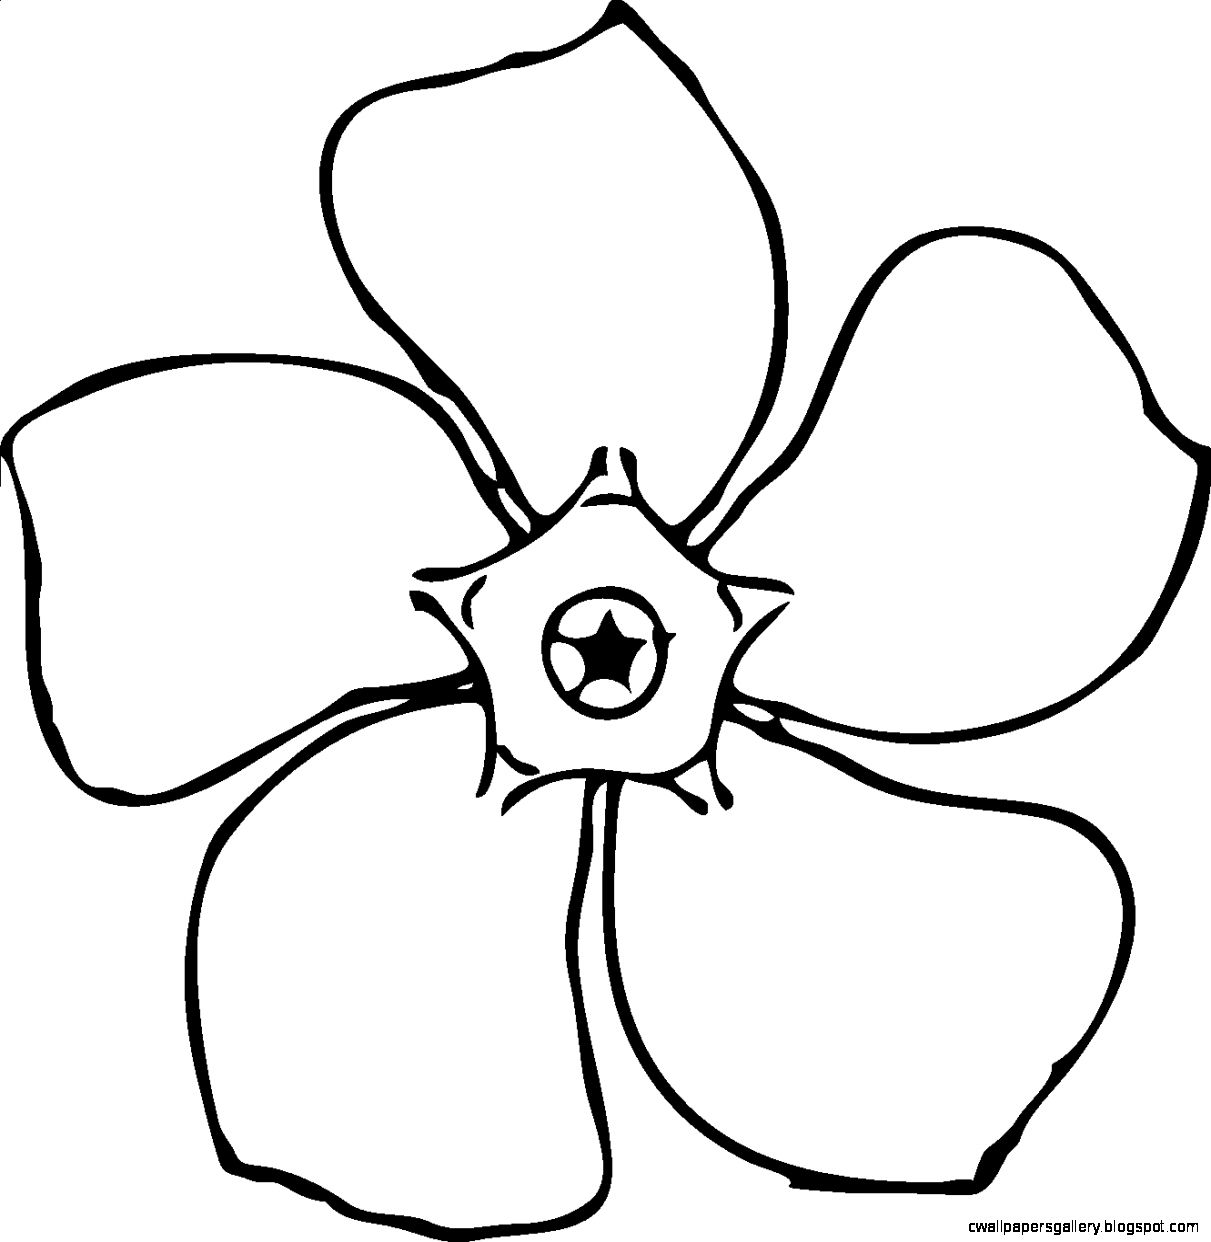 Simple Black And White Flower Clipart